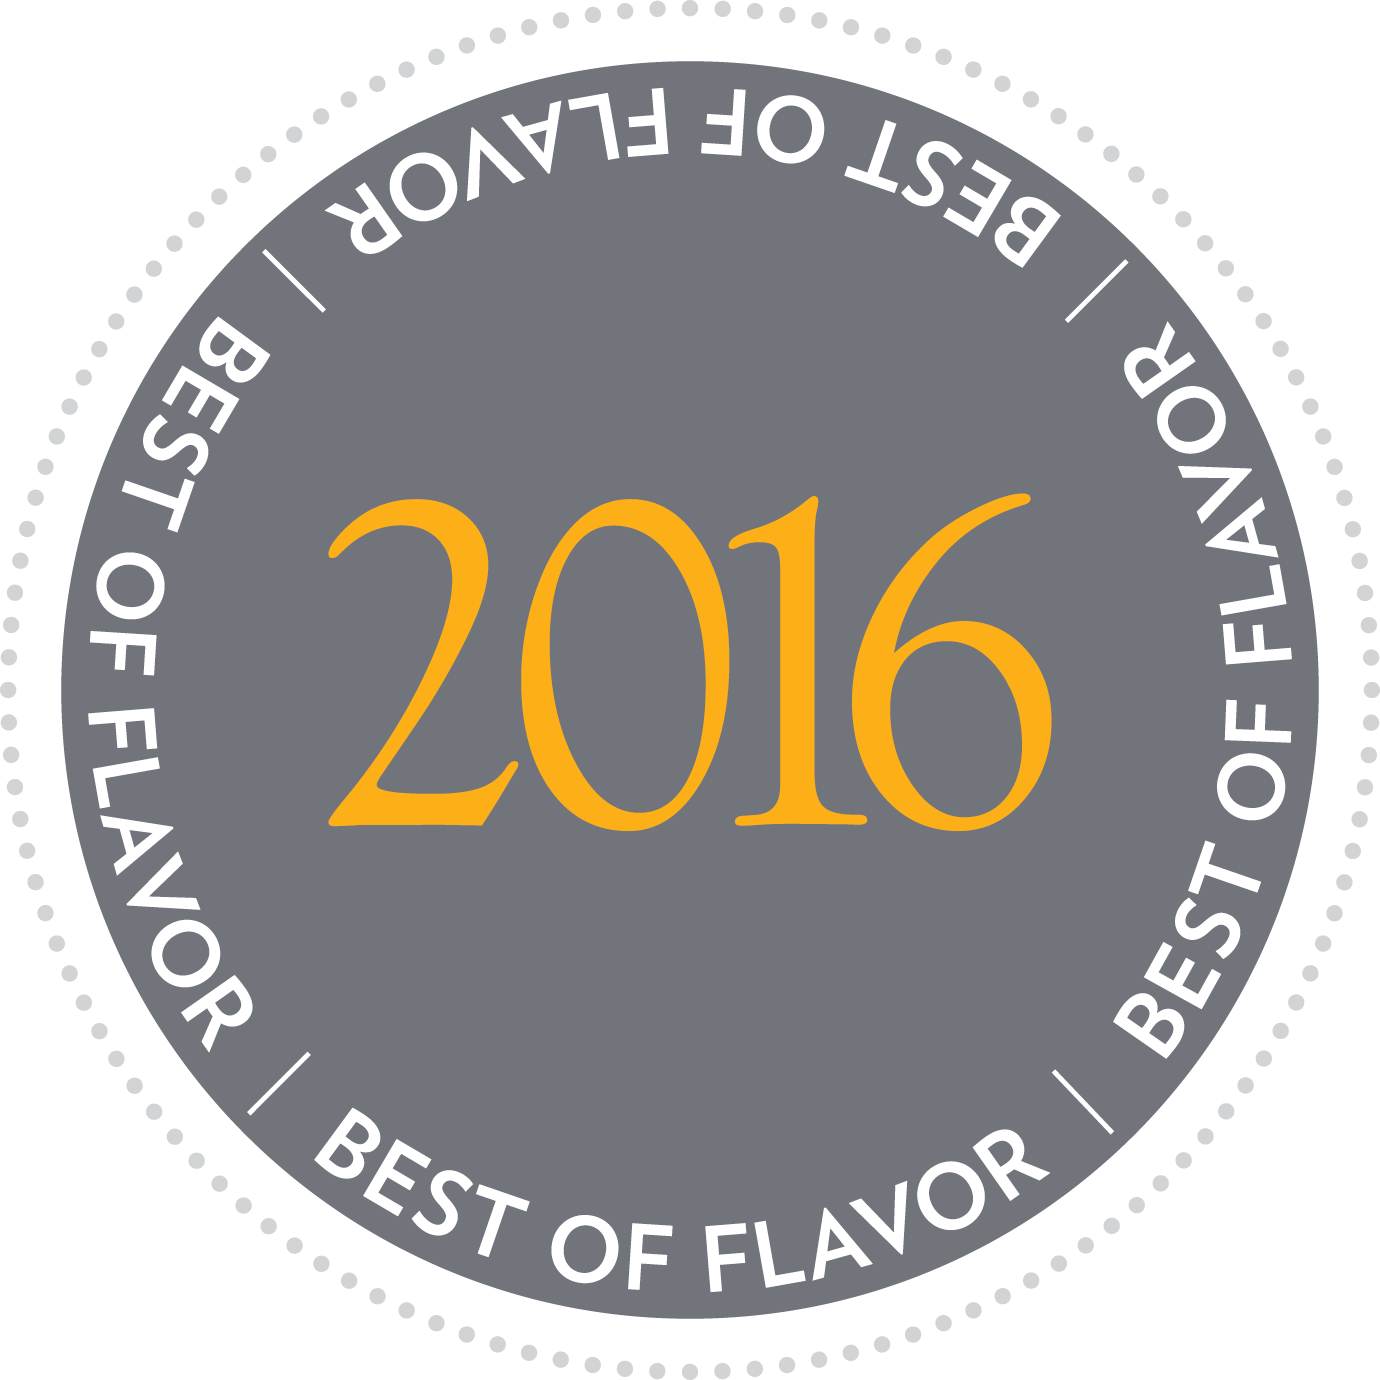 Best of Flavor Seal